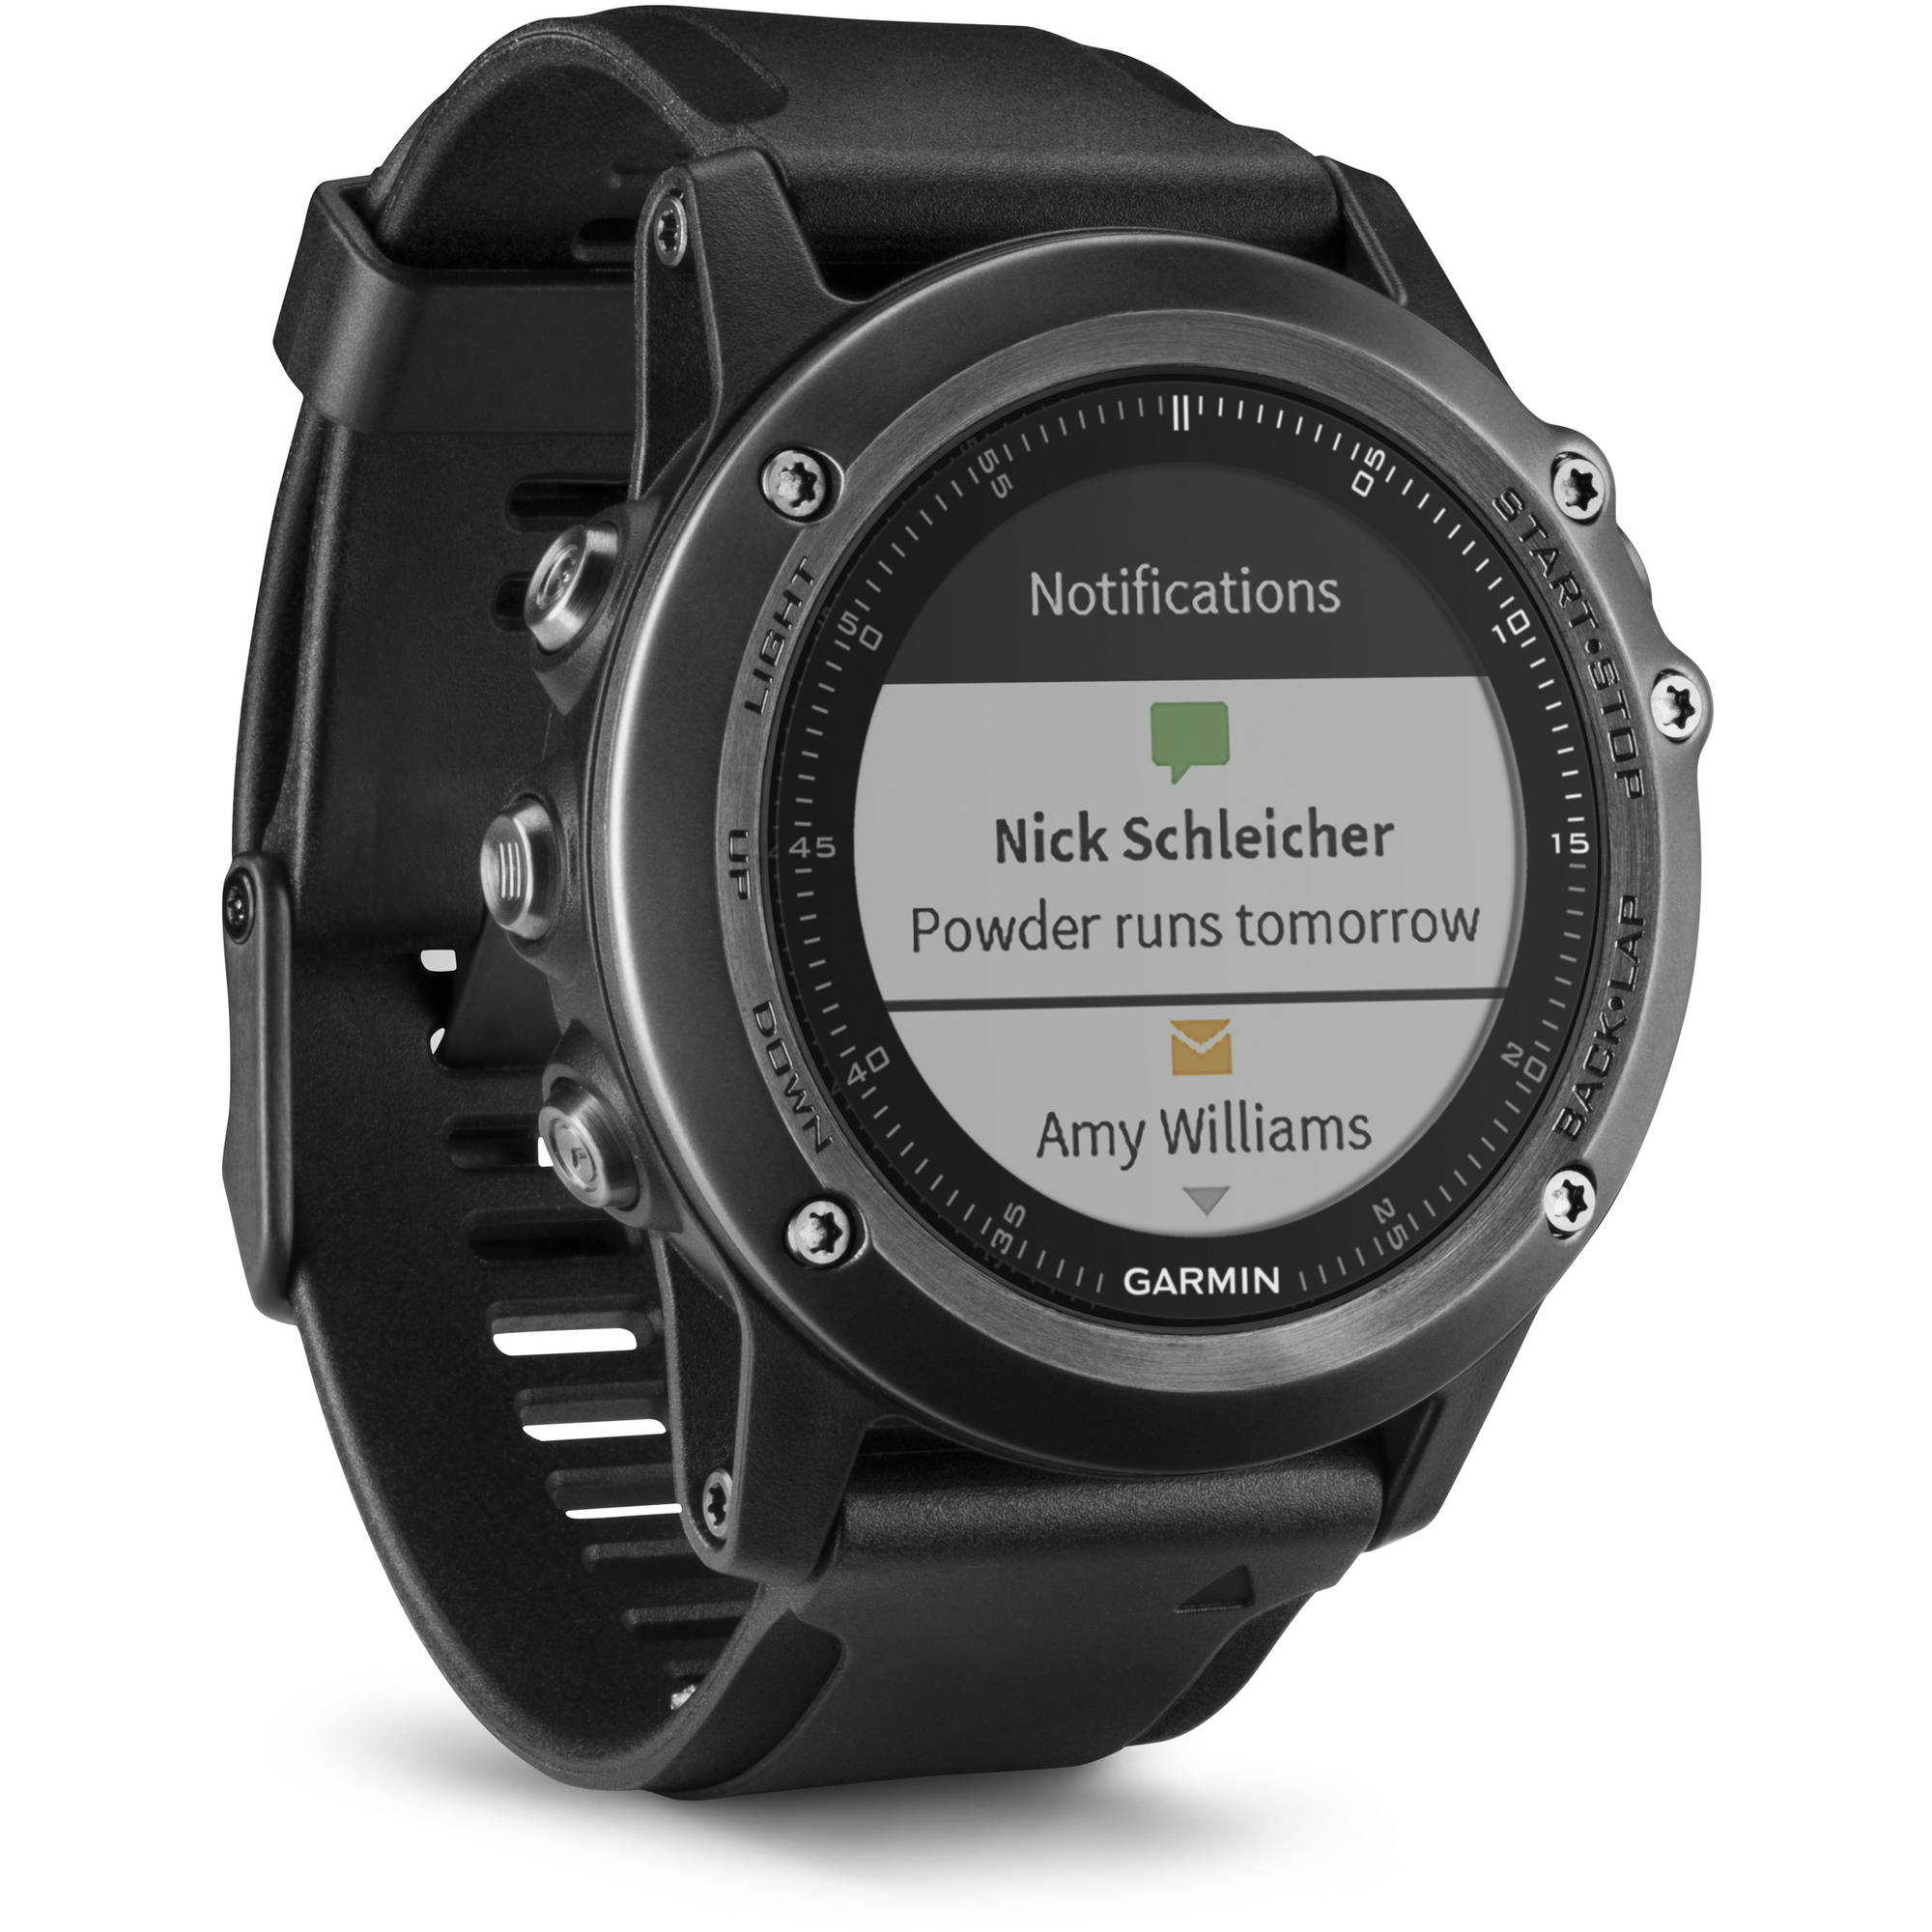 fenix garmin ip abc watches com hr gps walmart smartwatch